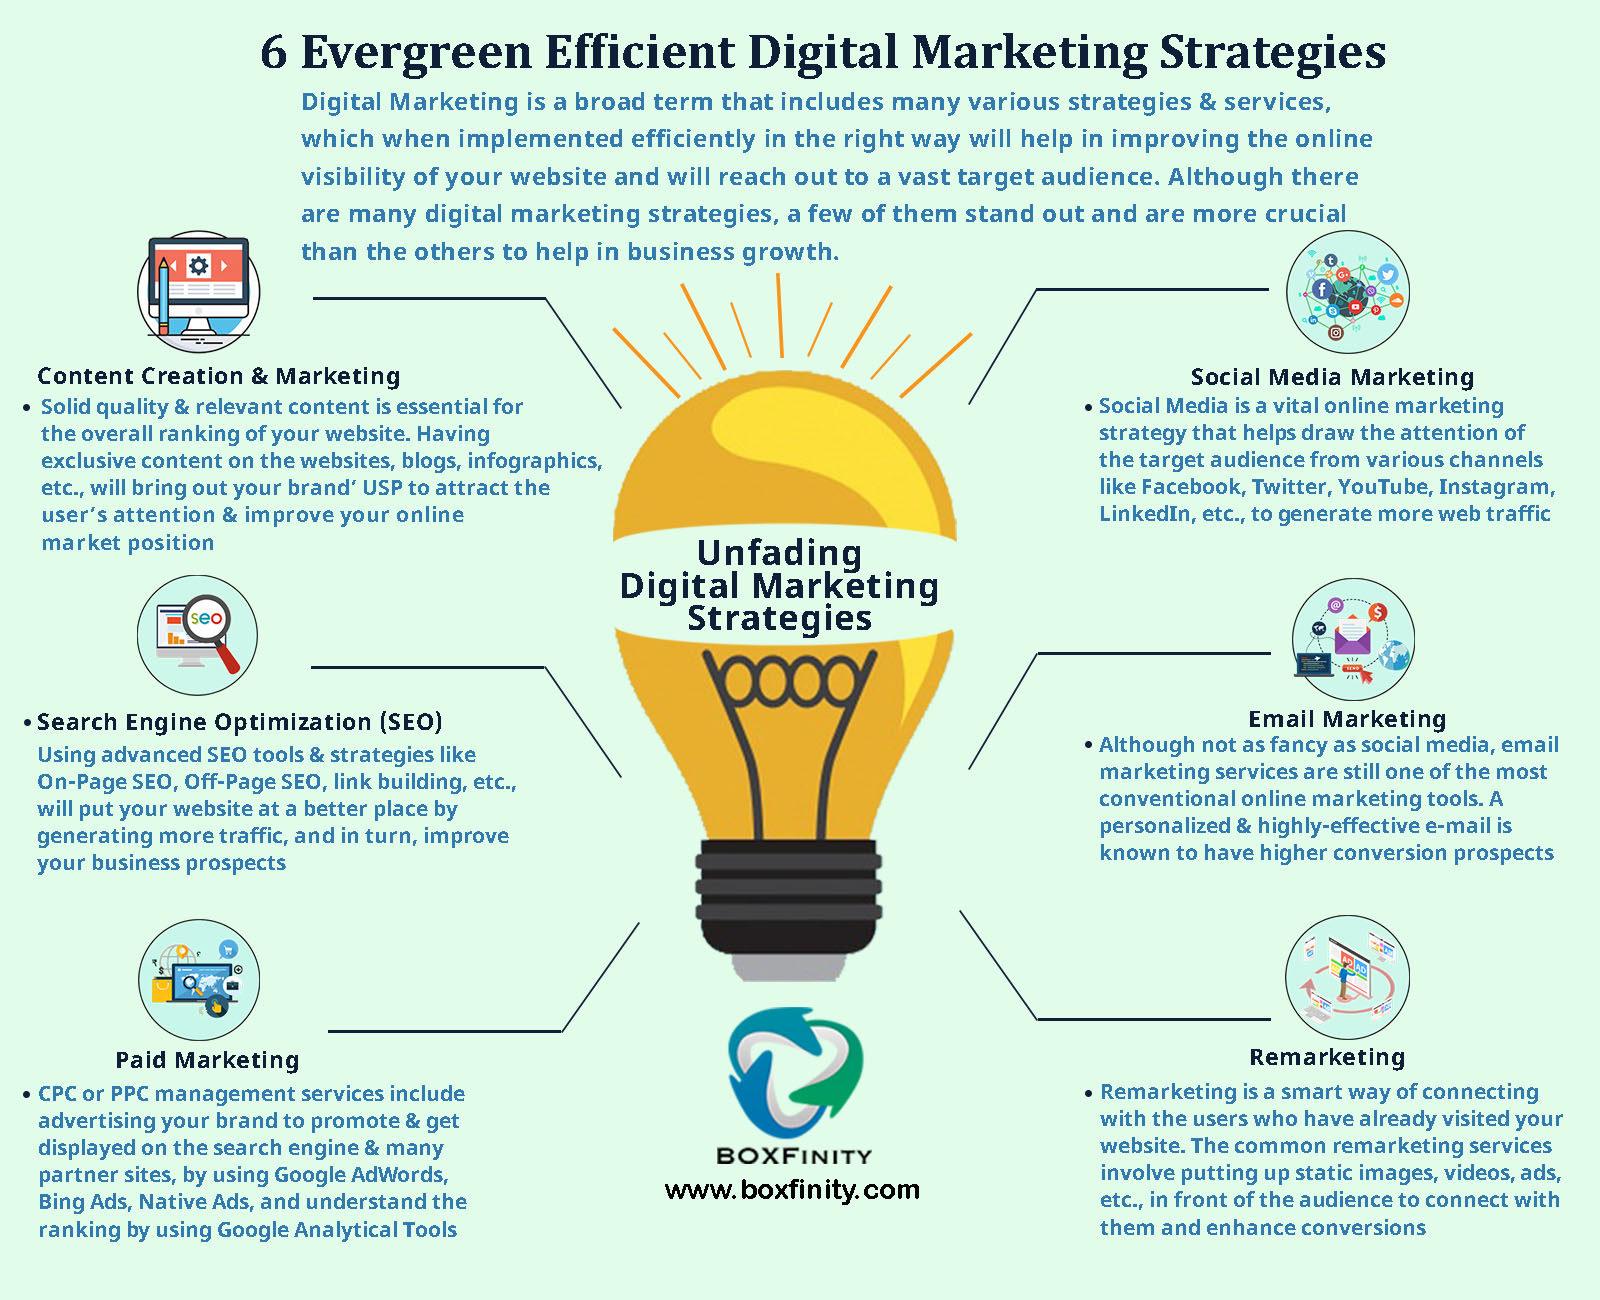 6-evergreen-efficient-digital-marketing-strategies-infographic-plaza